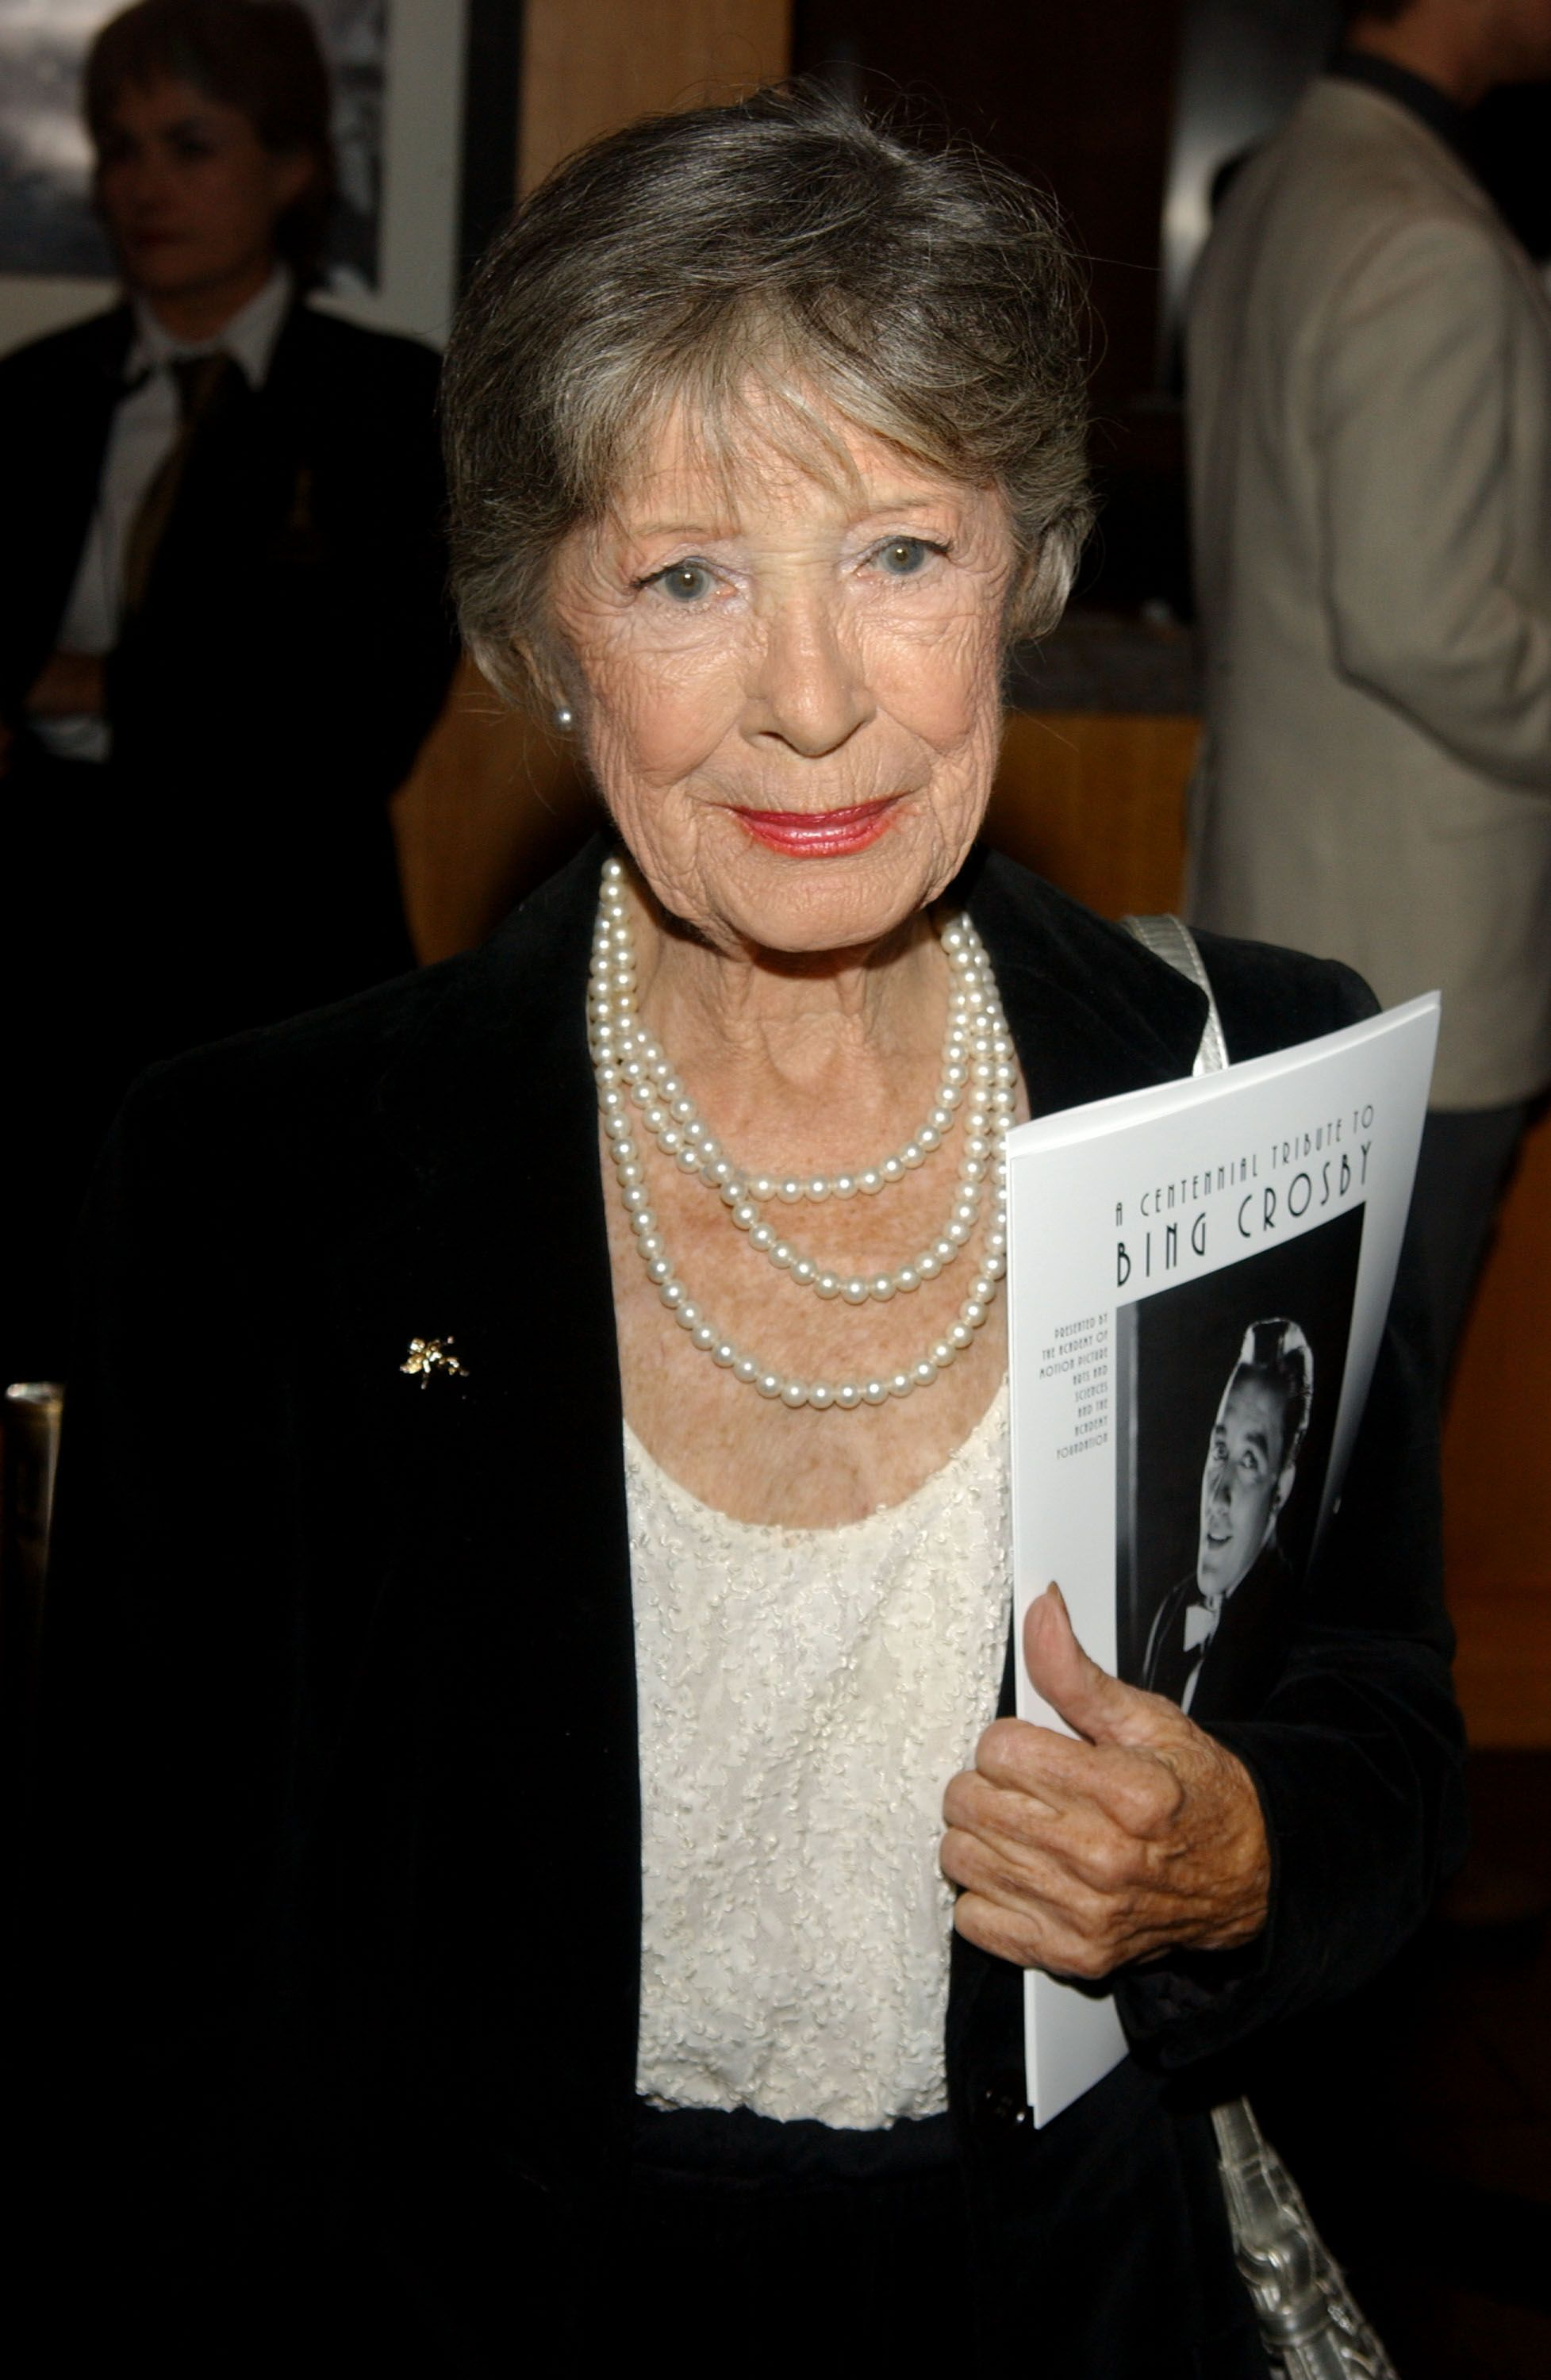 Edith Fellows at the Academy of Motion Picture Arts and Sciences' Centennial Tribute to Bing Crosby on November 21, 2003 | Photo: Getty Images